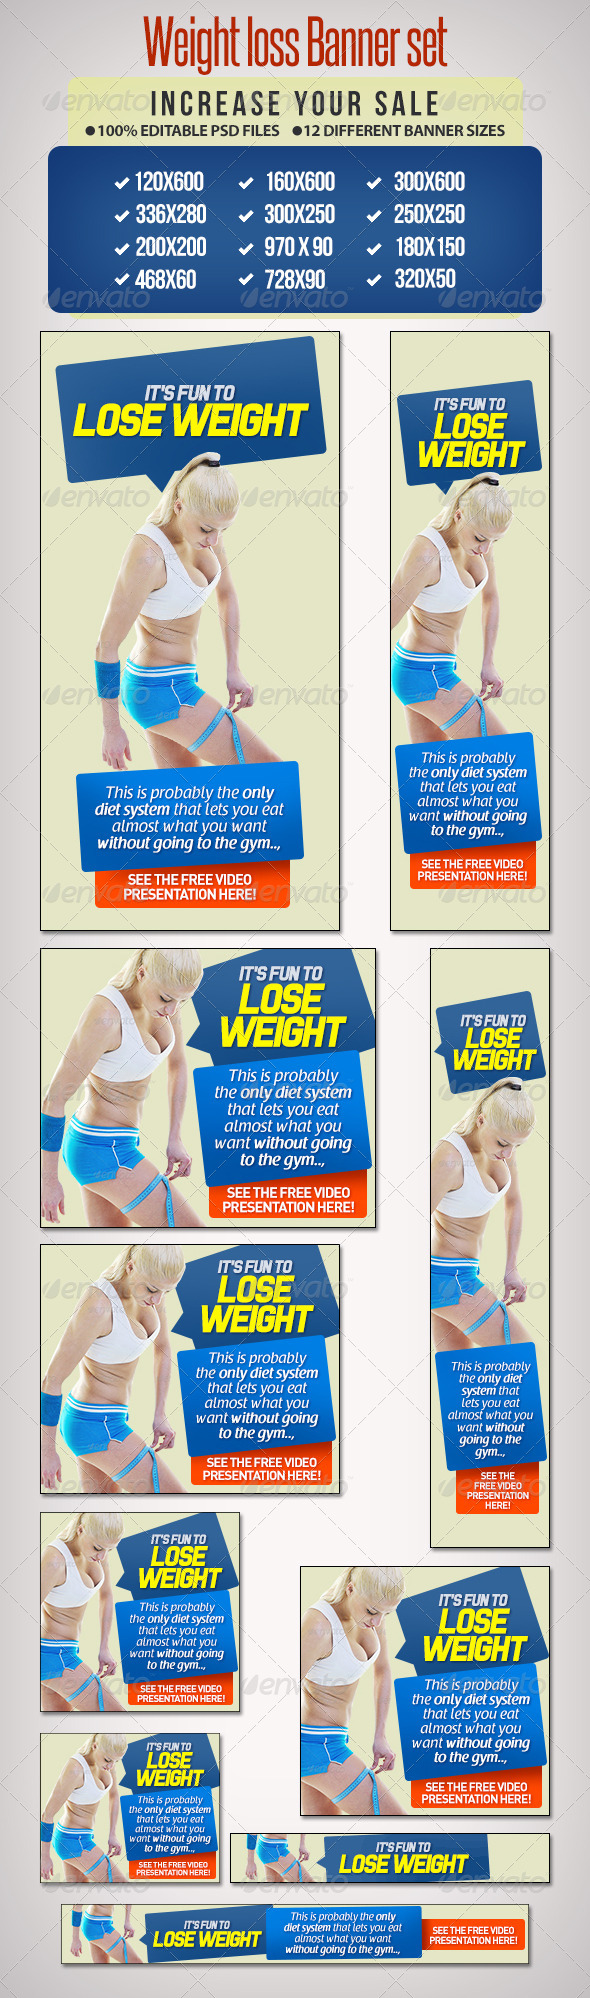 GraphicRiver Weight Loss Banner Set 11 6698200